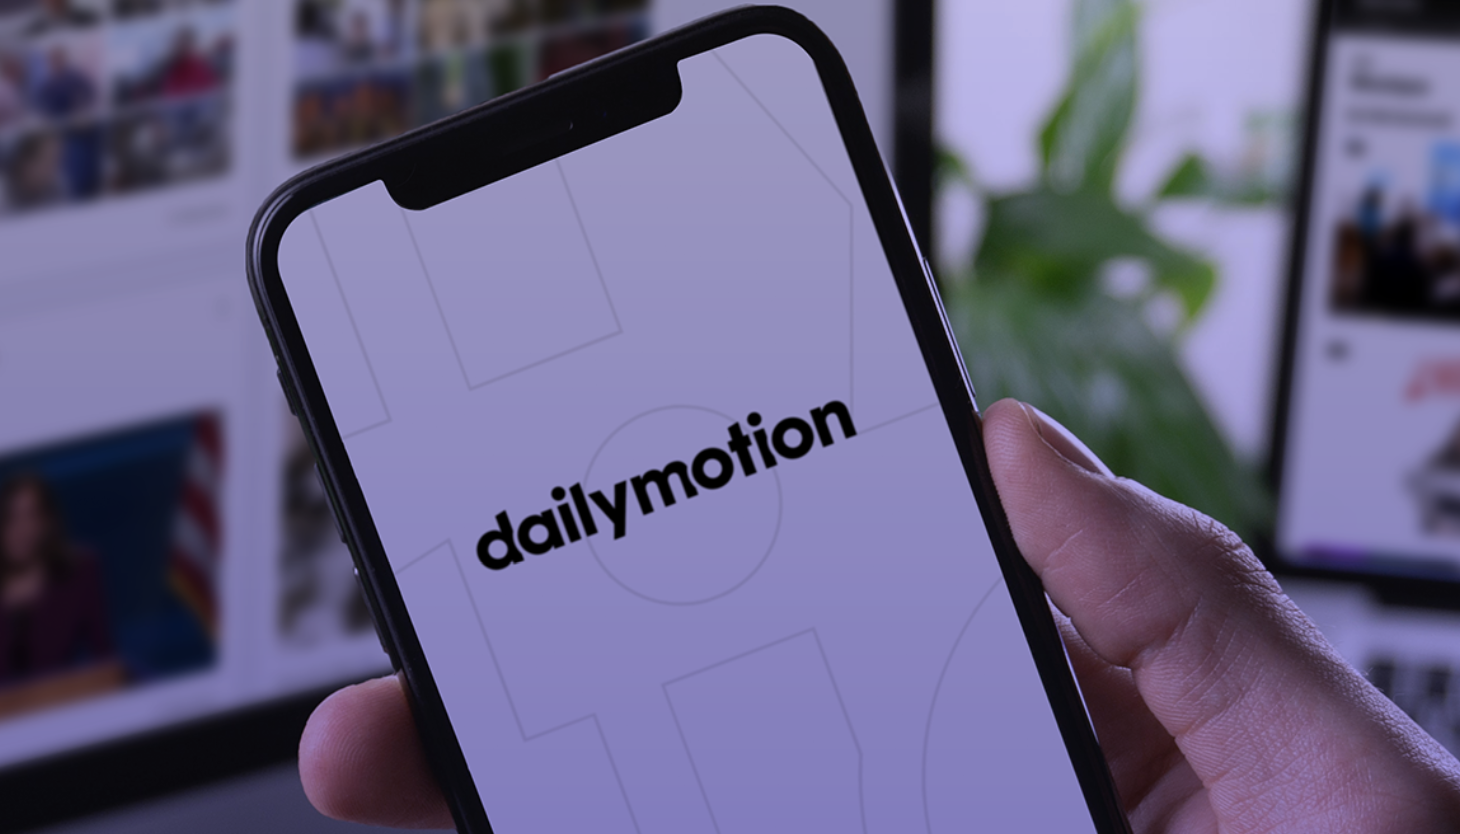 Release Note: Dailymotion Integration